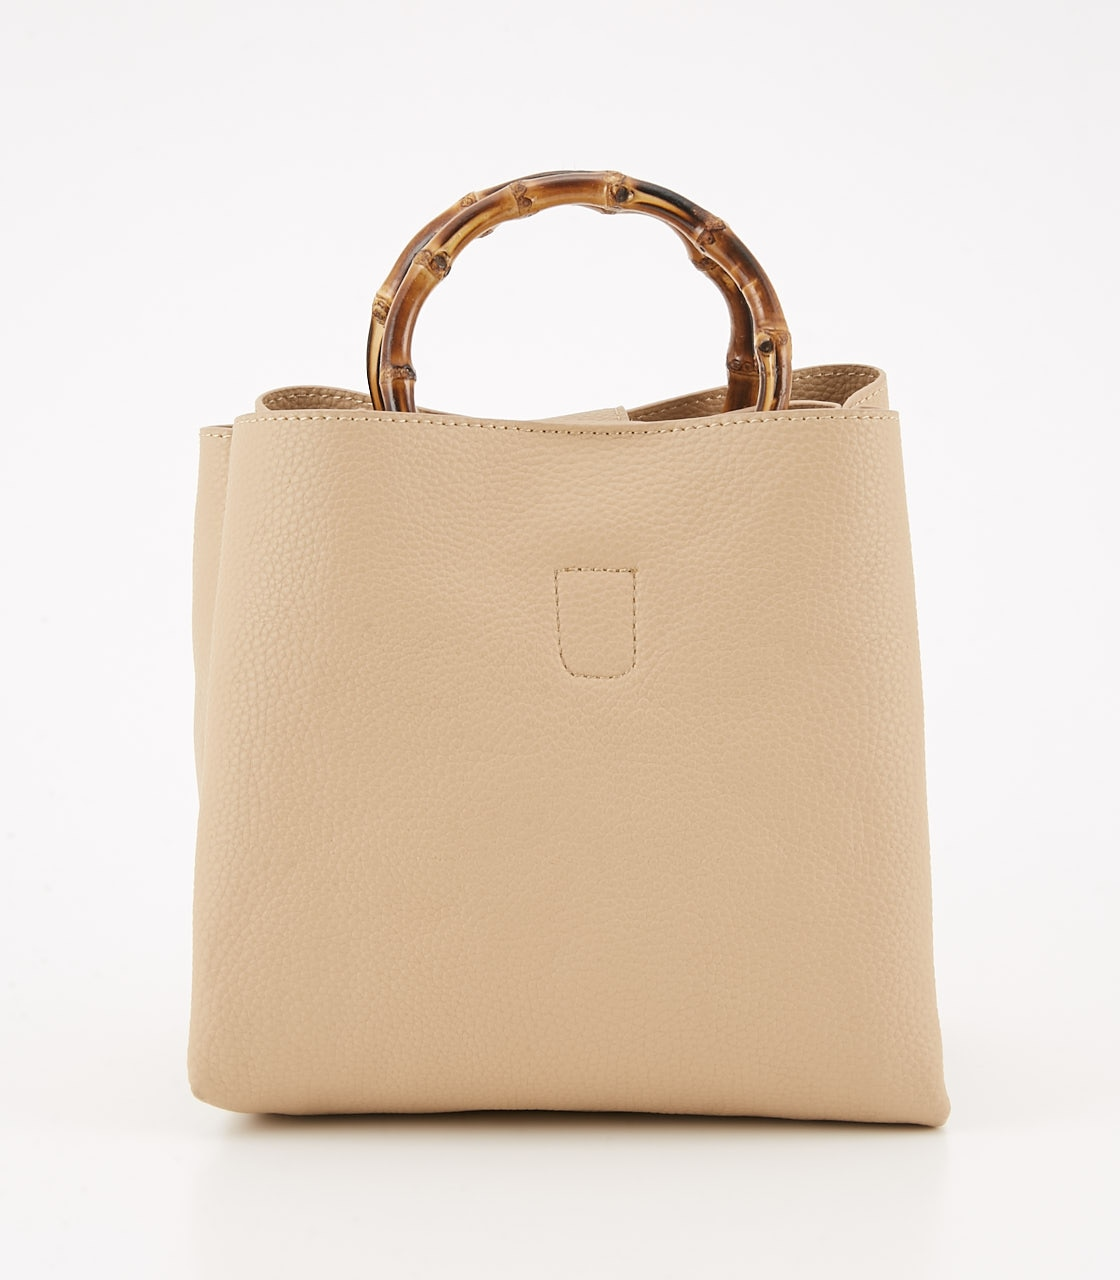 【AZUL BY MOUSSY】BAMBOO HANDLE BAG 詳細画像 L/BEG 1